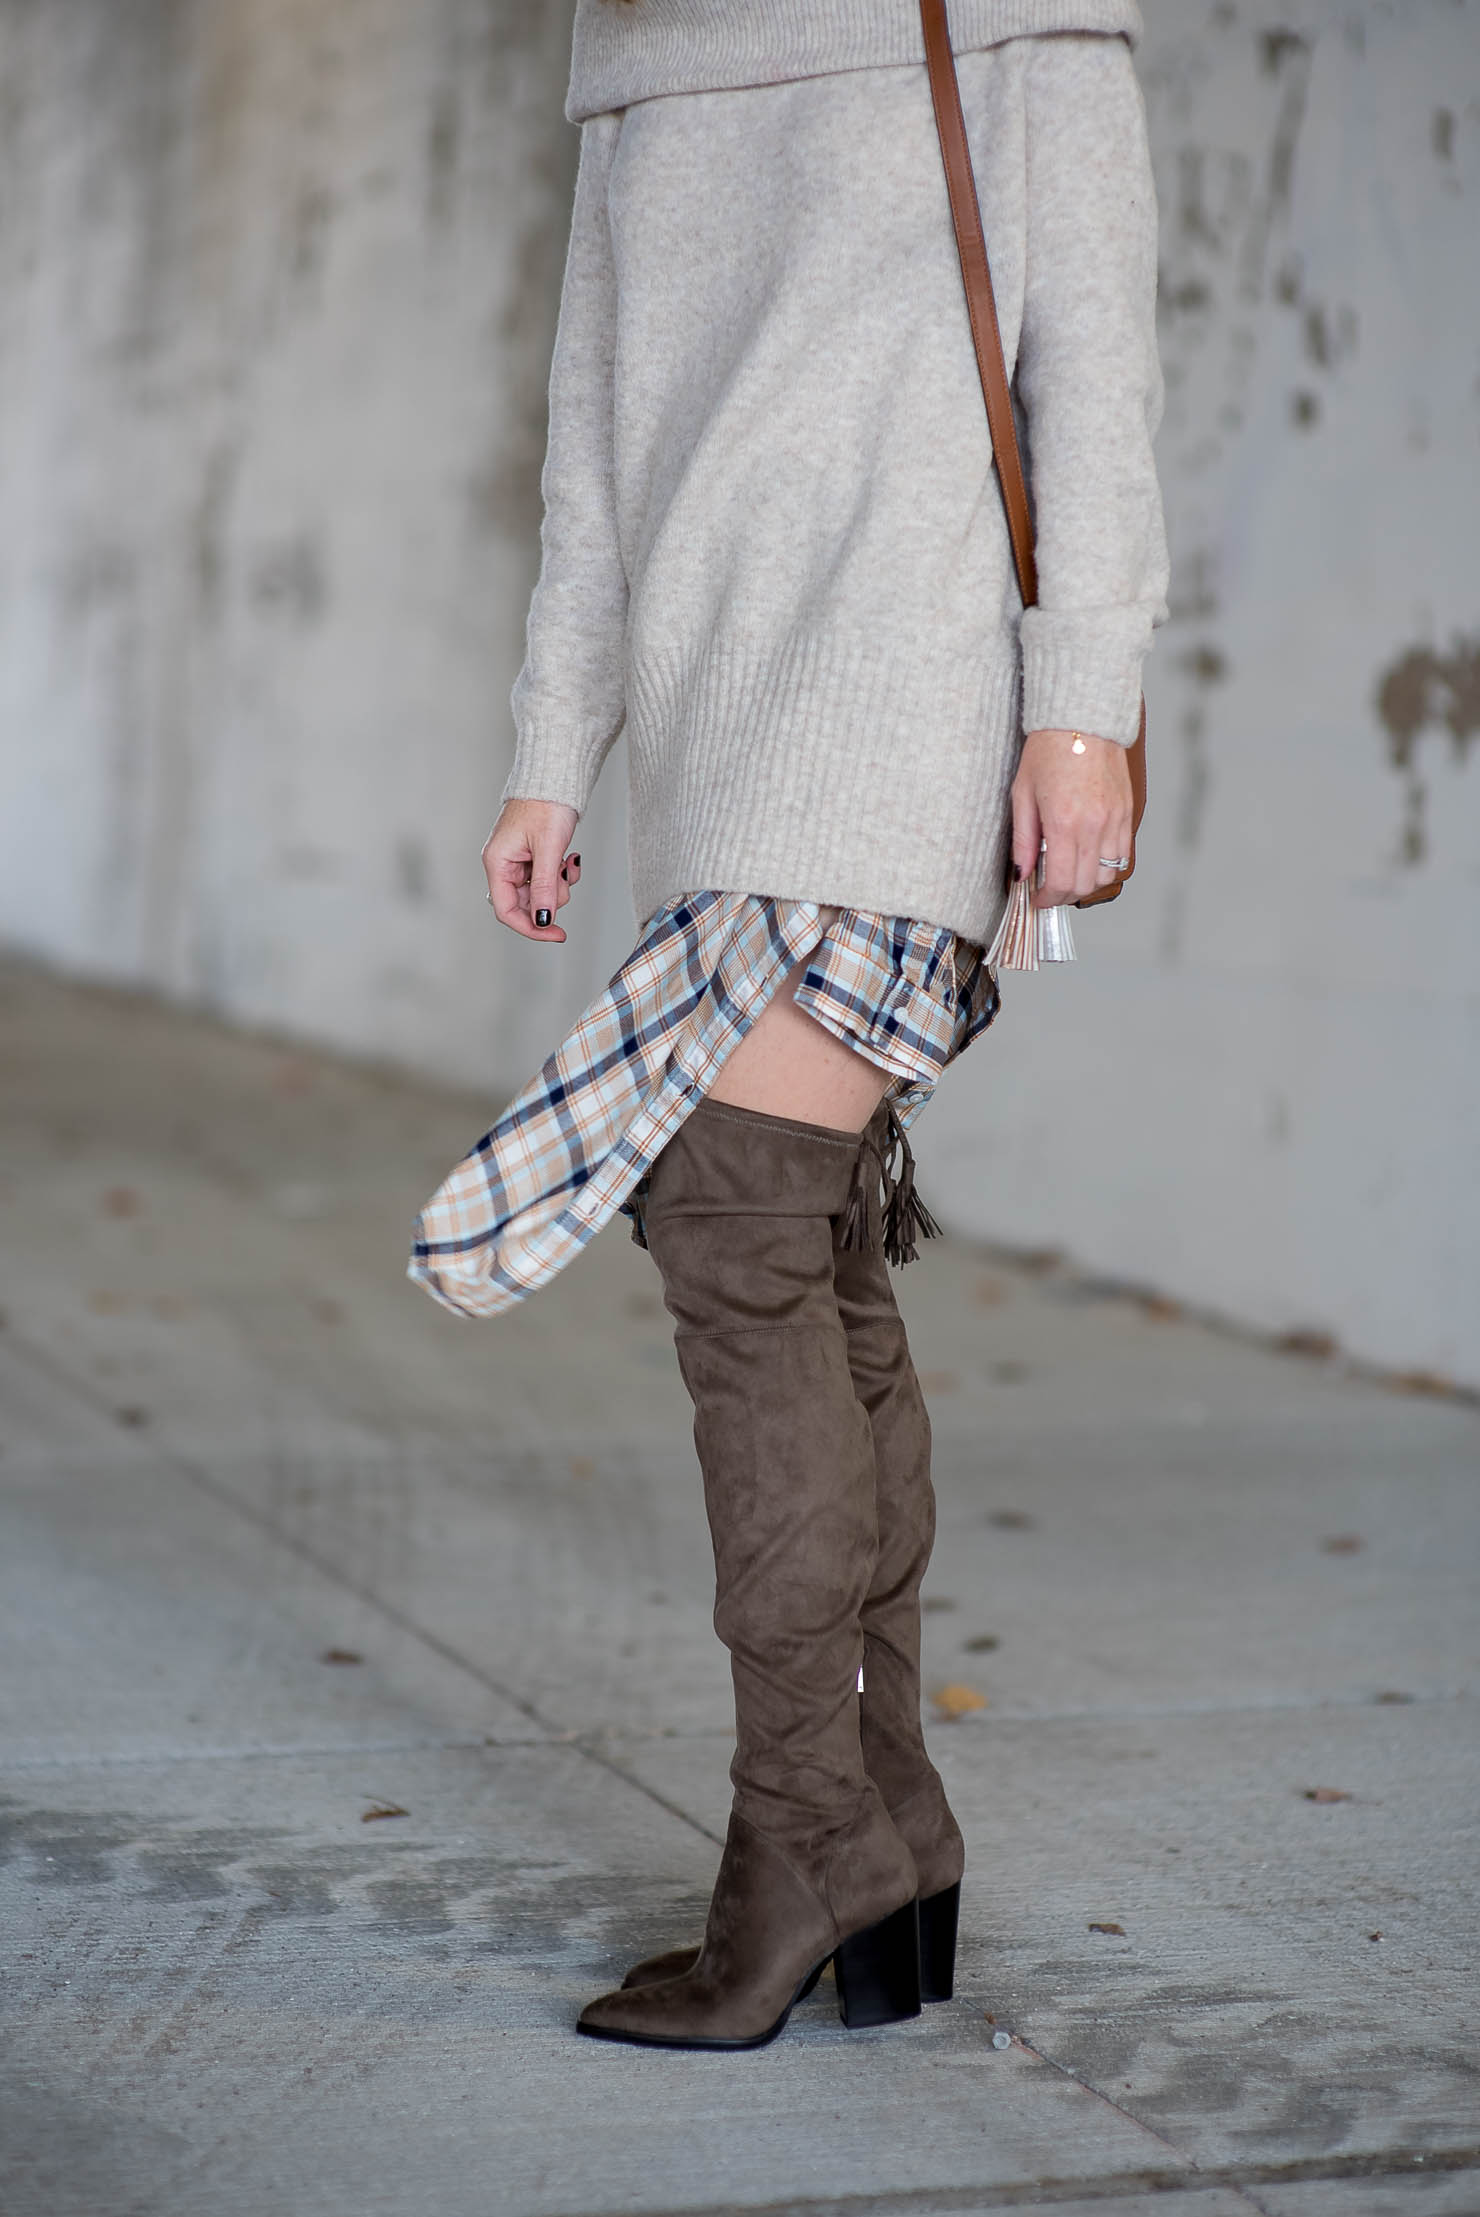 hostess-gift-guide-thanksgiving-outfit-idea-oversized-off-the-shoulder-sweater-over-plaid-shirt-the-best-ever-over-the-knee-boots-marc-fisher-alinda-boots